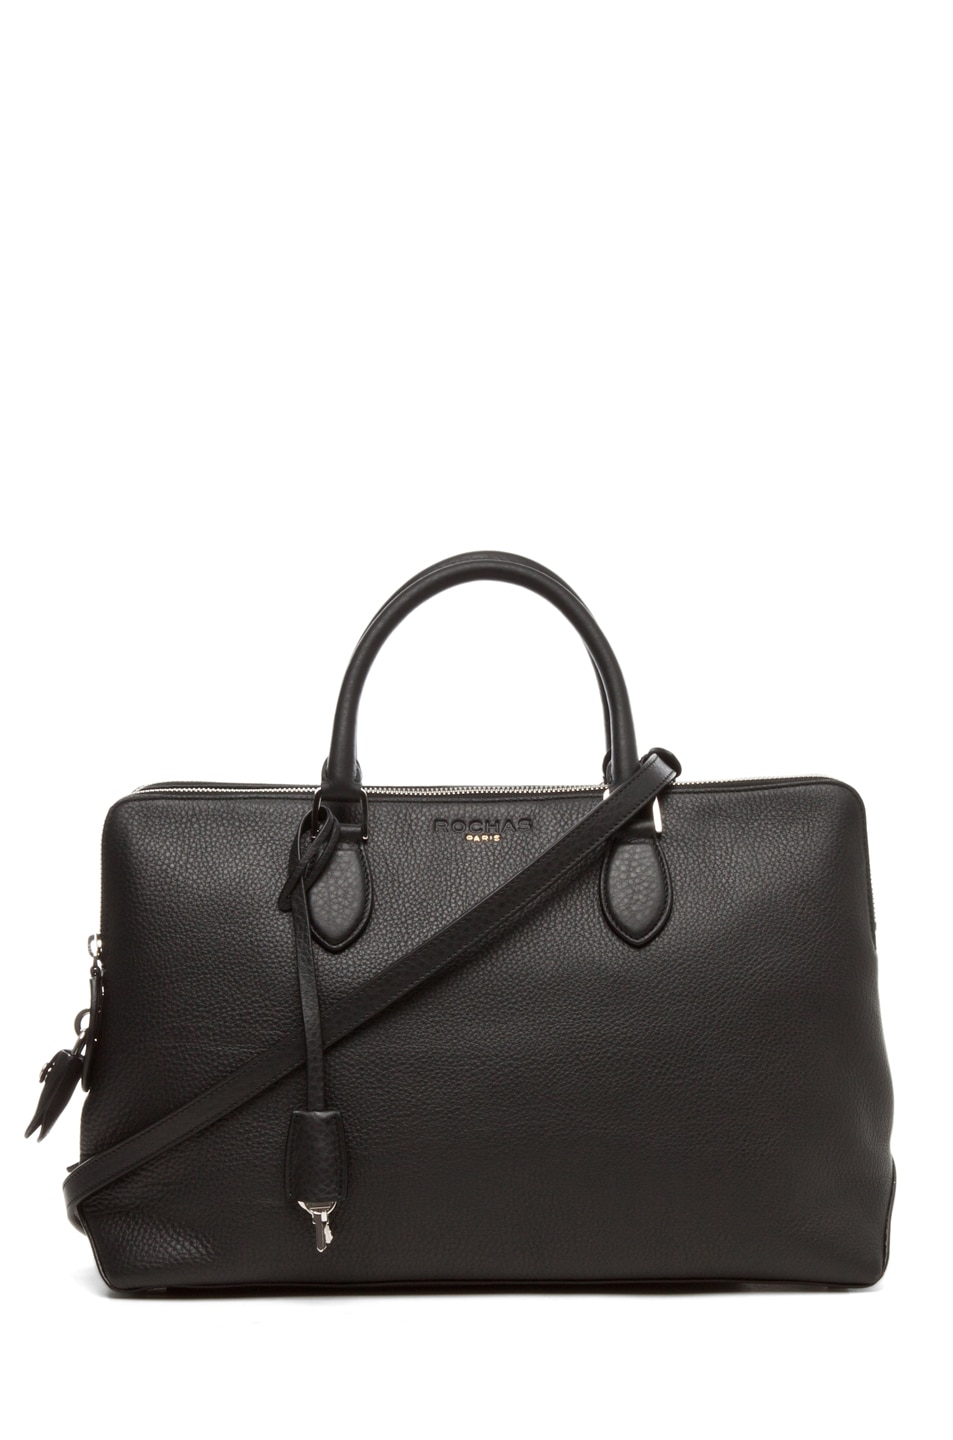 Image 1 of ROCHAS Borsa Satchel in Black